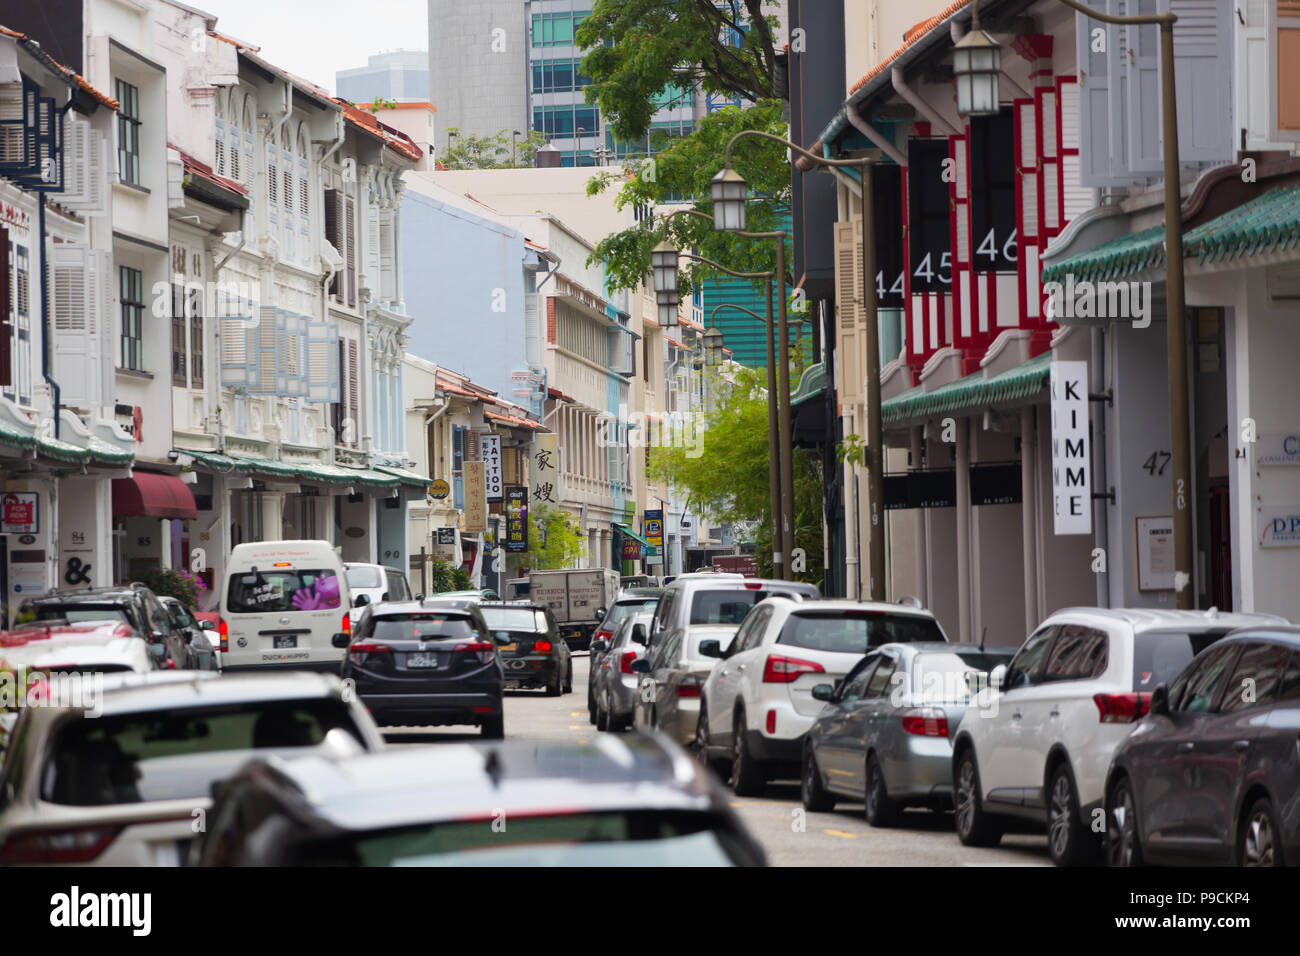 Shophouses in Singapore - Stock Image